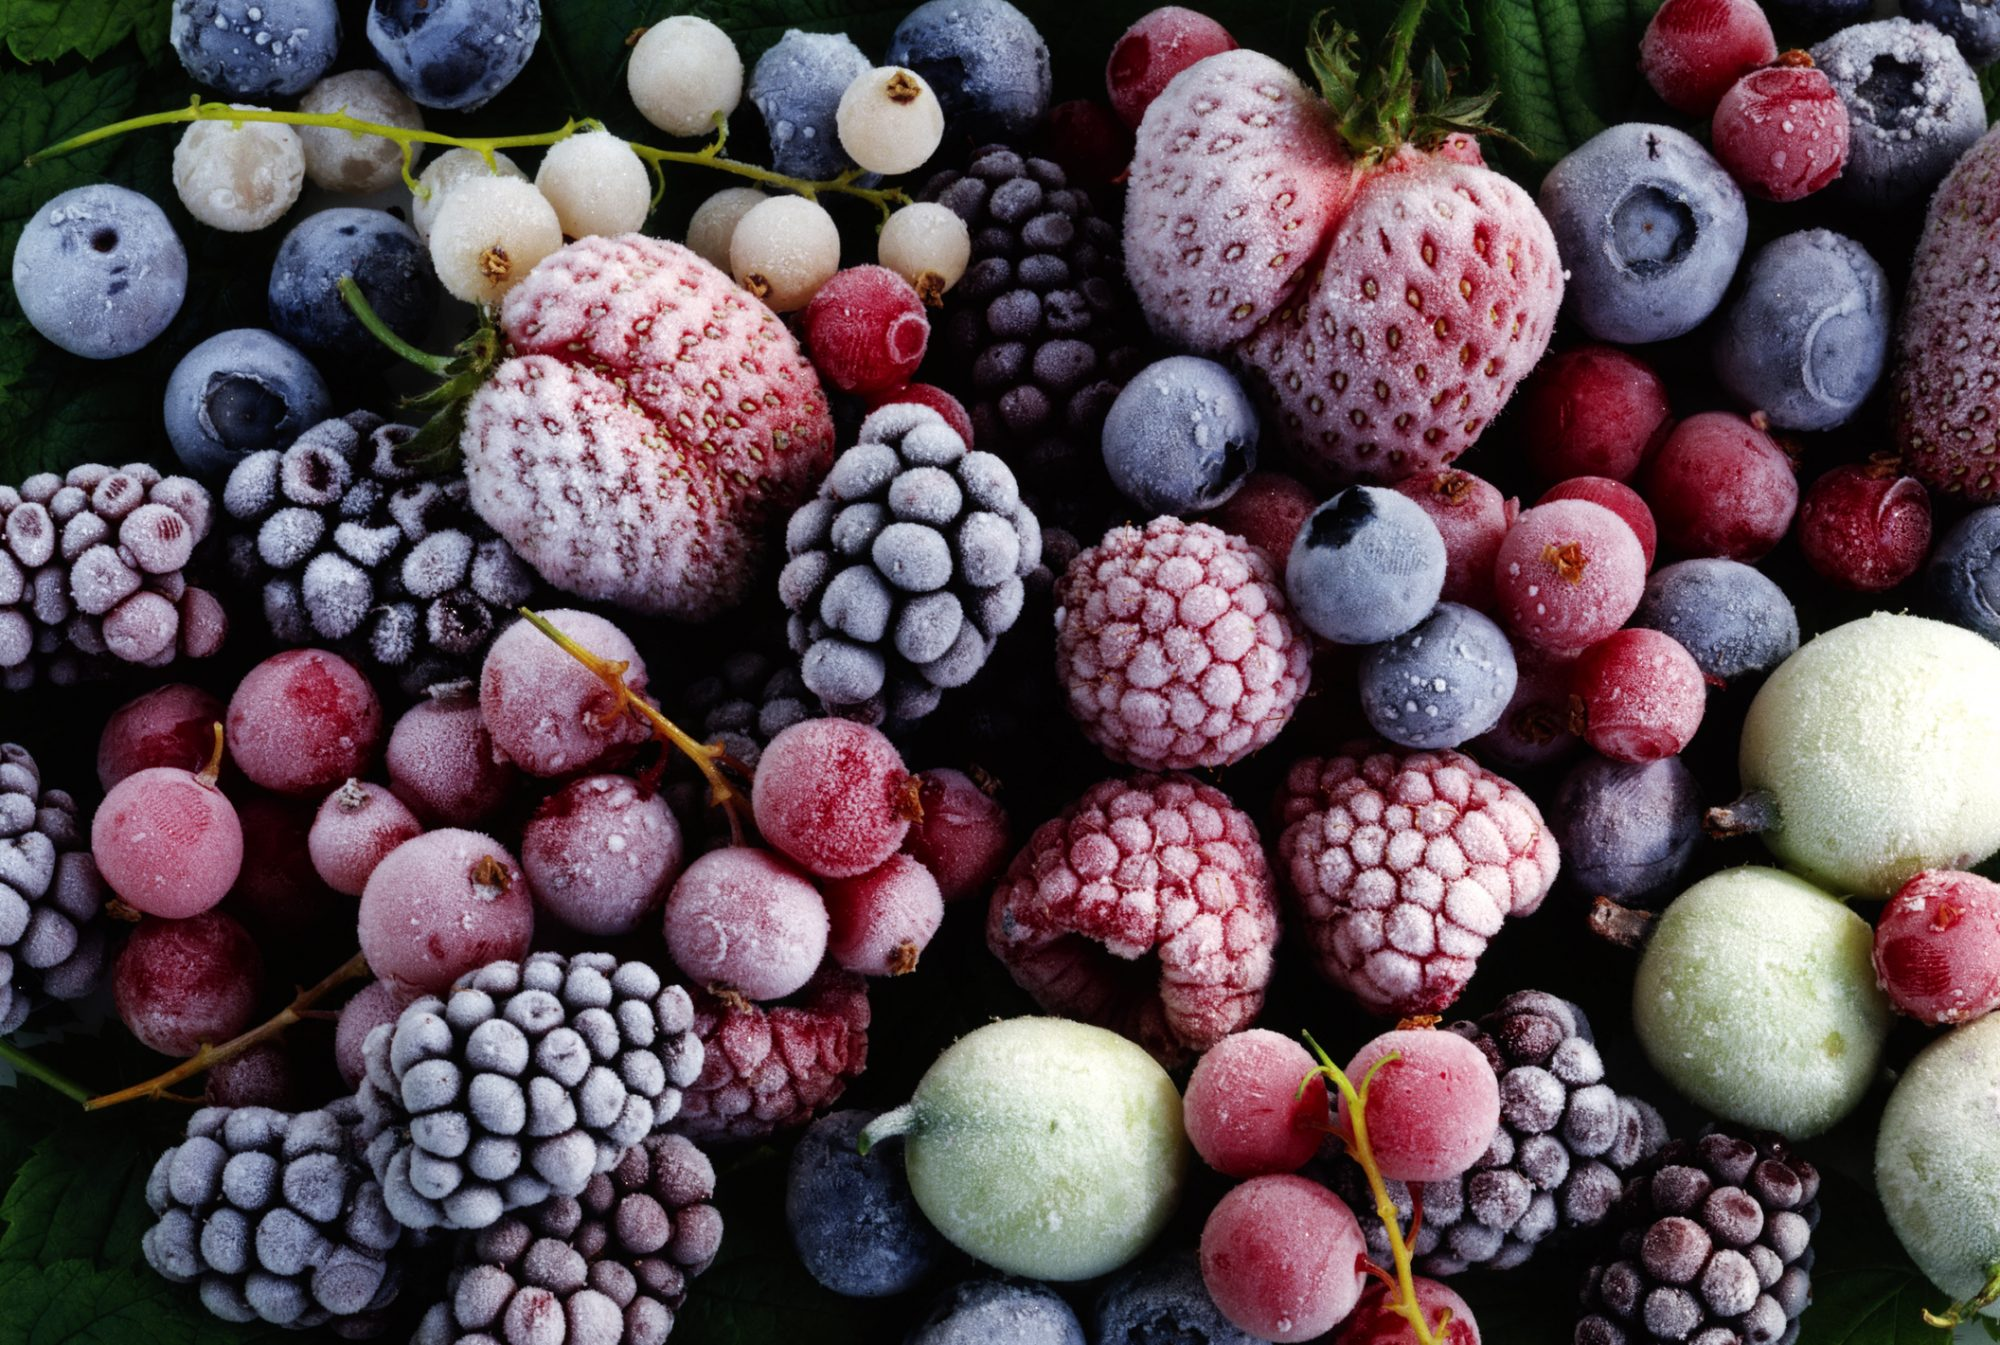 4 Reasons to Buy More of Your Fruits and Veggies Frozen